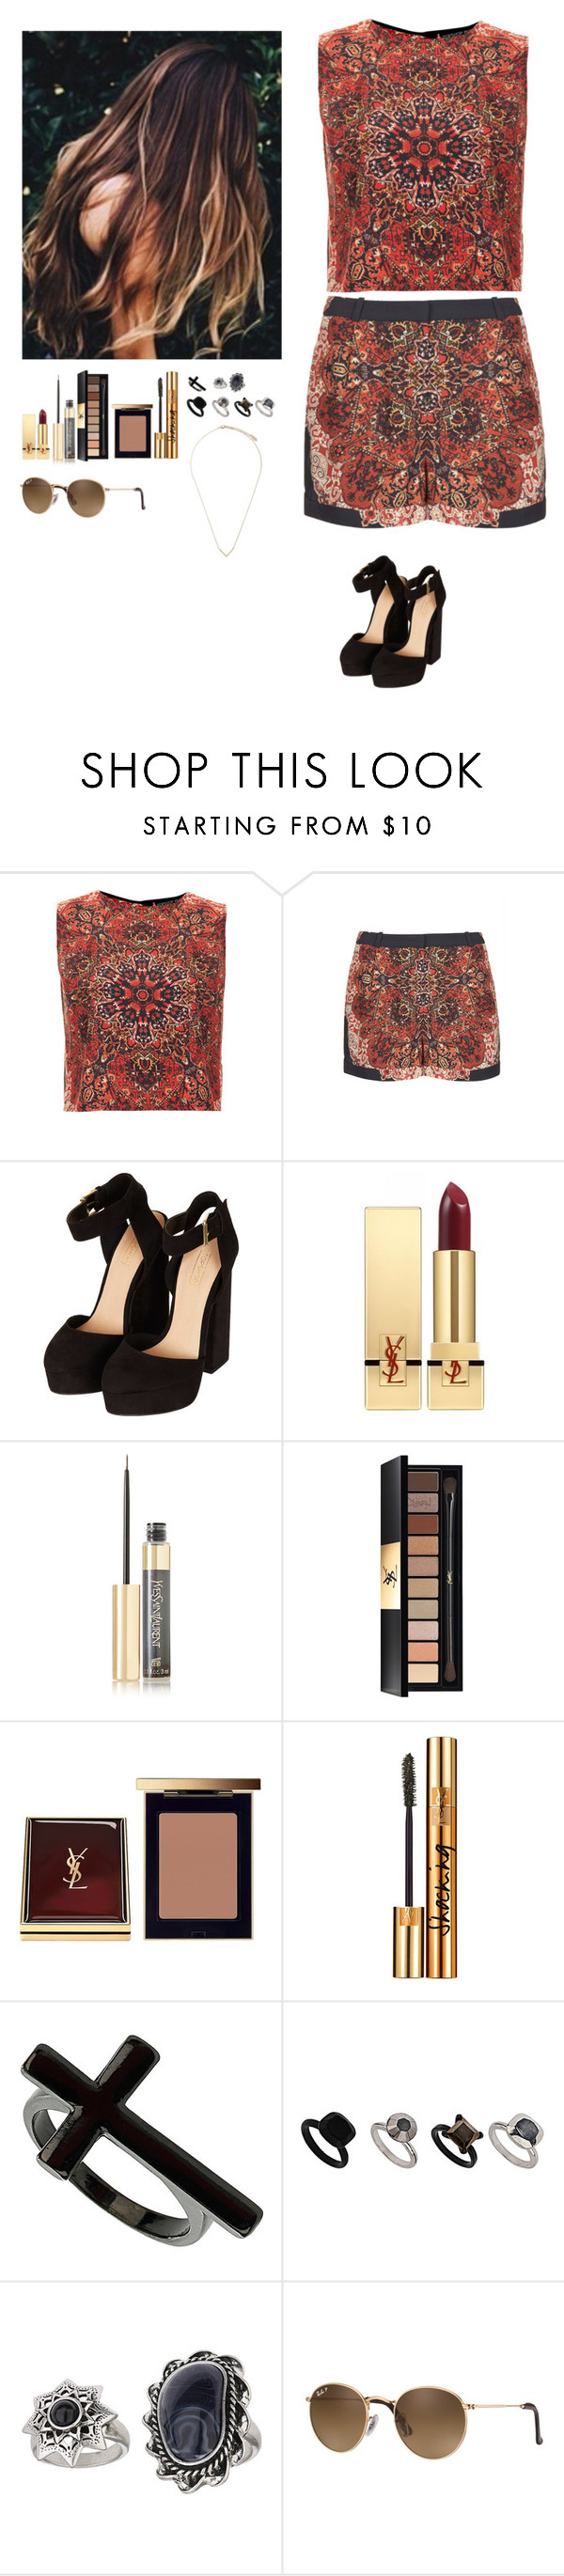 """Untitled #477"" by erin-bittencout ❤ liked on Polyvore featuring Topshop, Yves Saint Laurent and Ray-Ban"